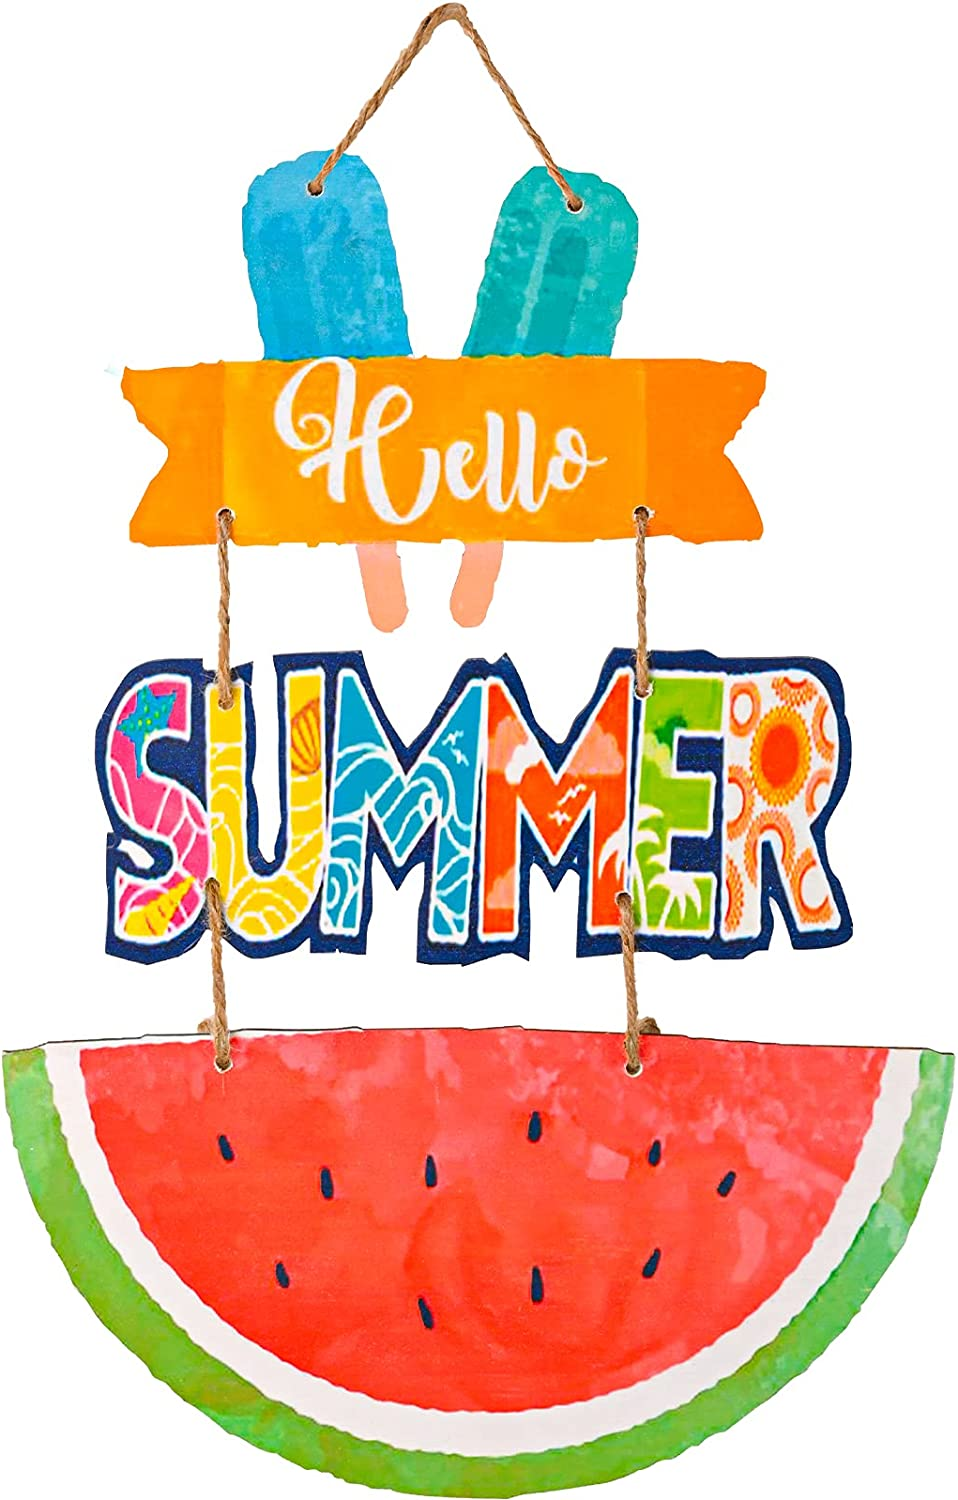 Hello Summer Hanging Door Sign Plaque Home Decoration Watermelon Ice Cream House Wooden Sign Welcome Wall Sign Farmhouse Garden Yard Front Door Wall Porch Wooden Summer Decoration Party Supplies Indoor Outdoor